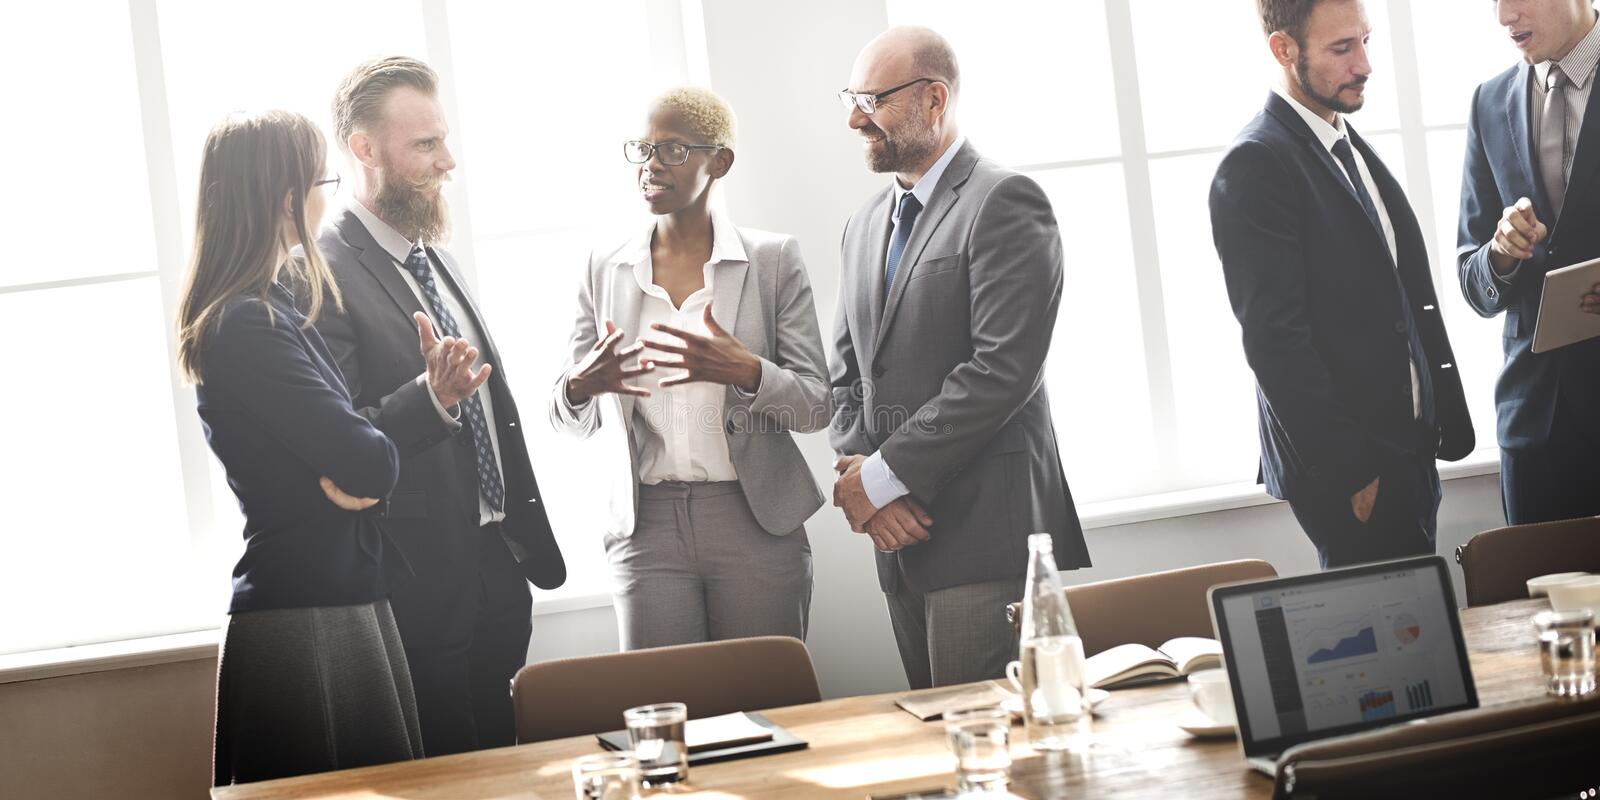 Download Business Group Meeting Discussion Strategy Working Concept Stock Image - Image: 66005727